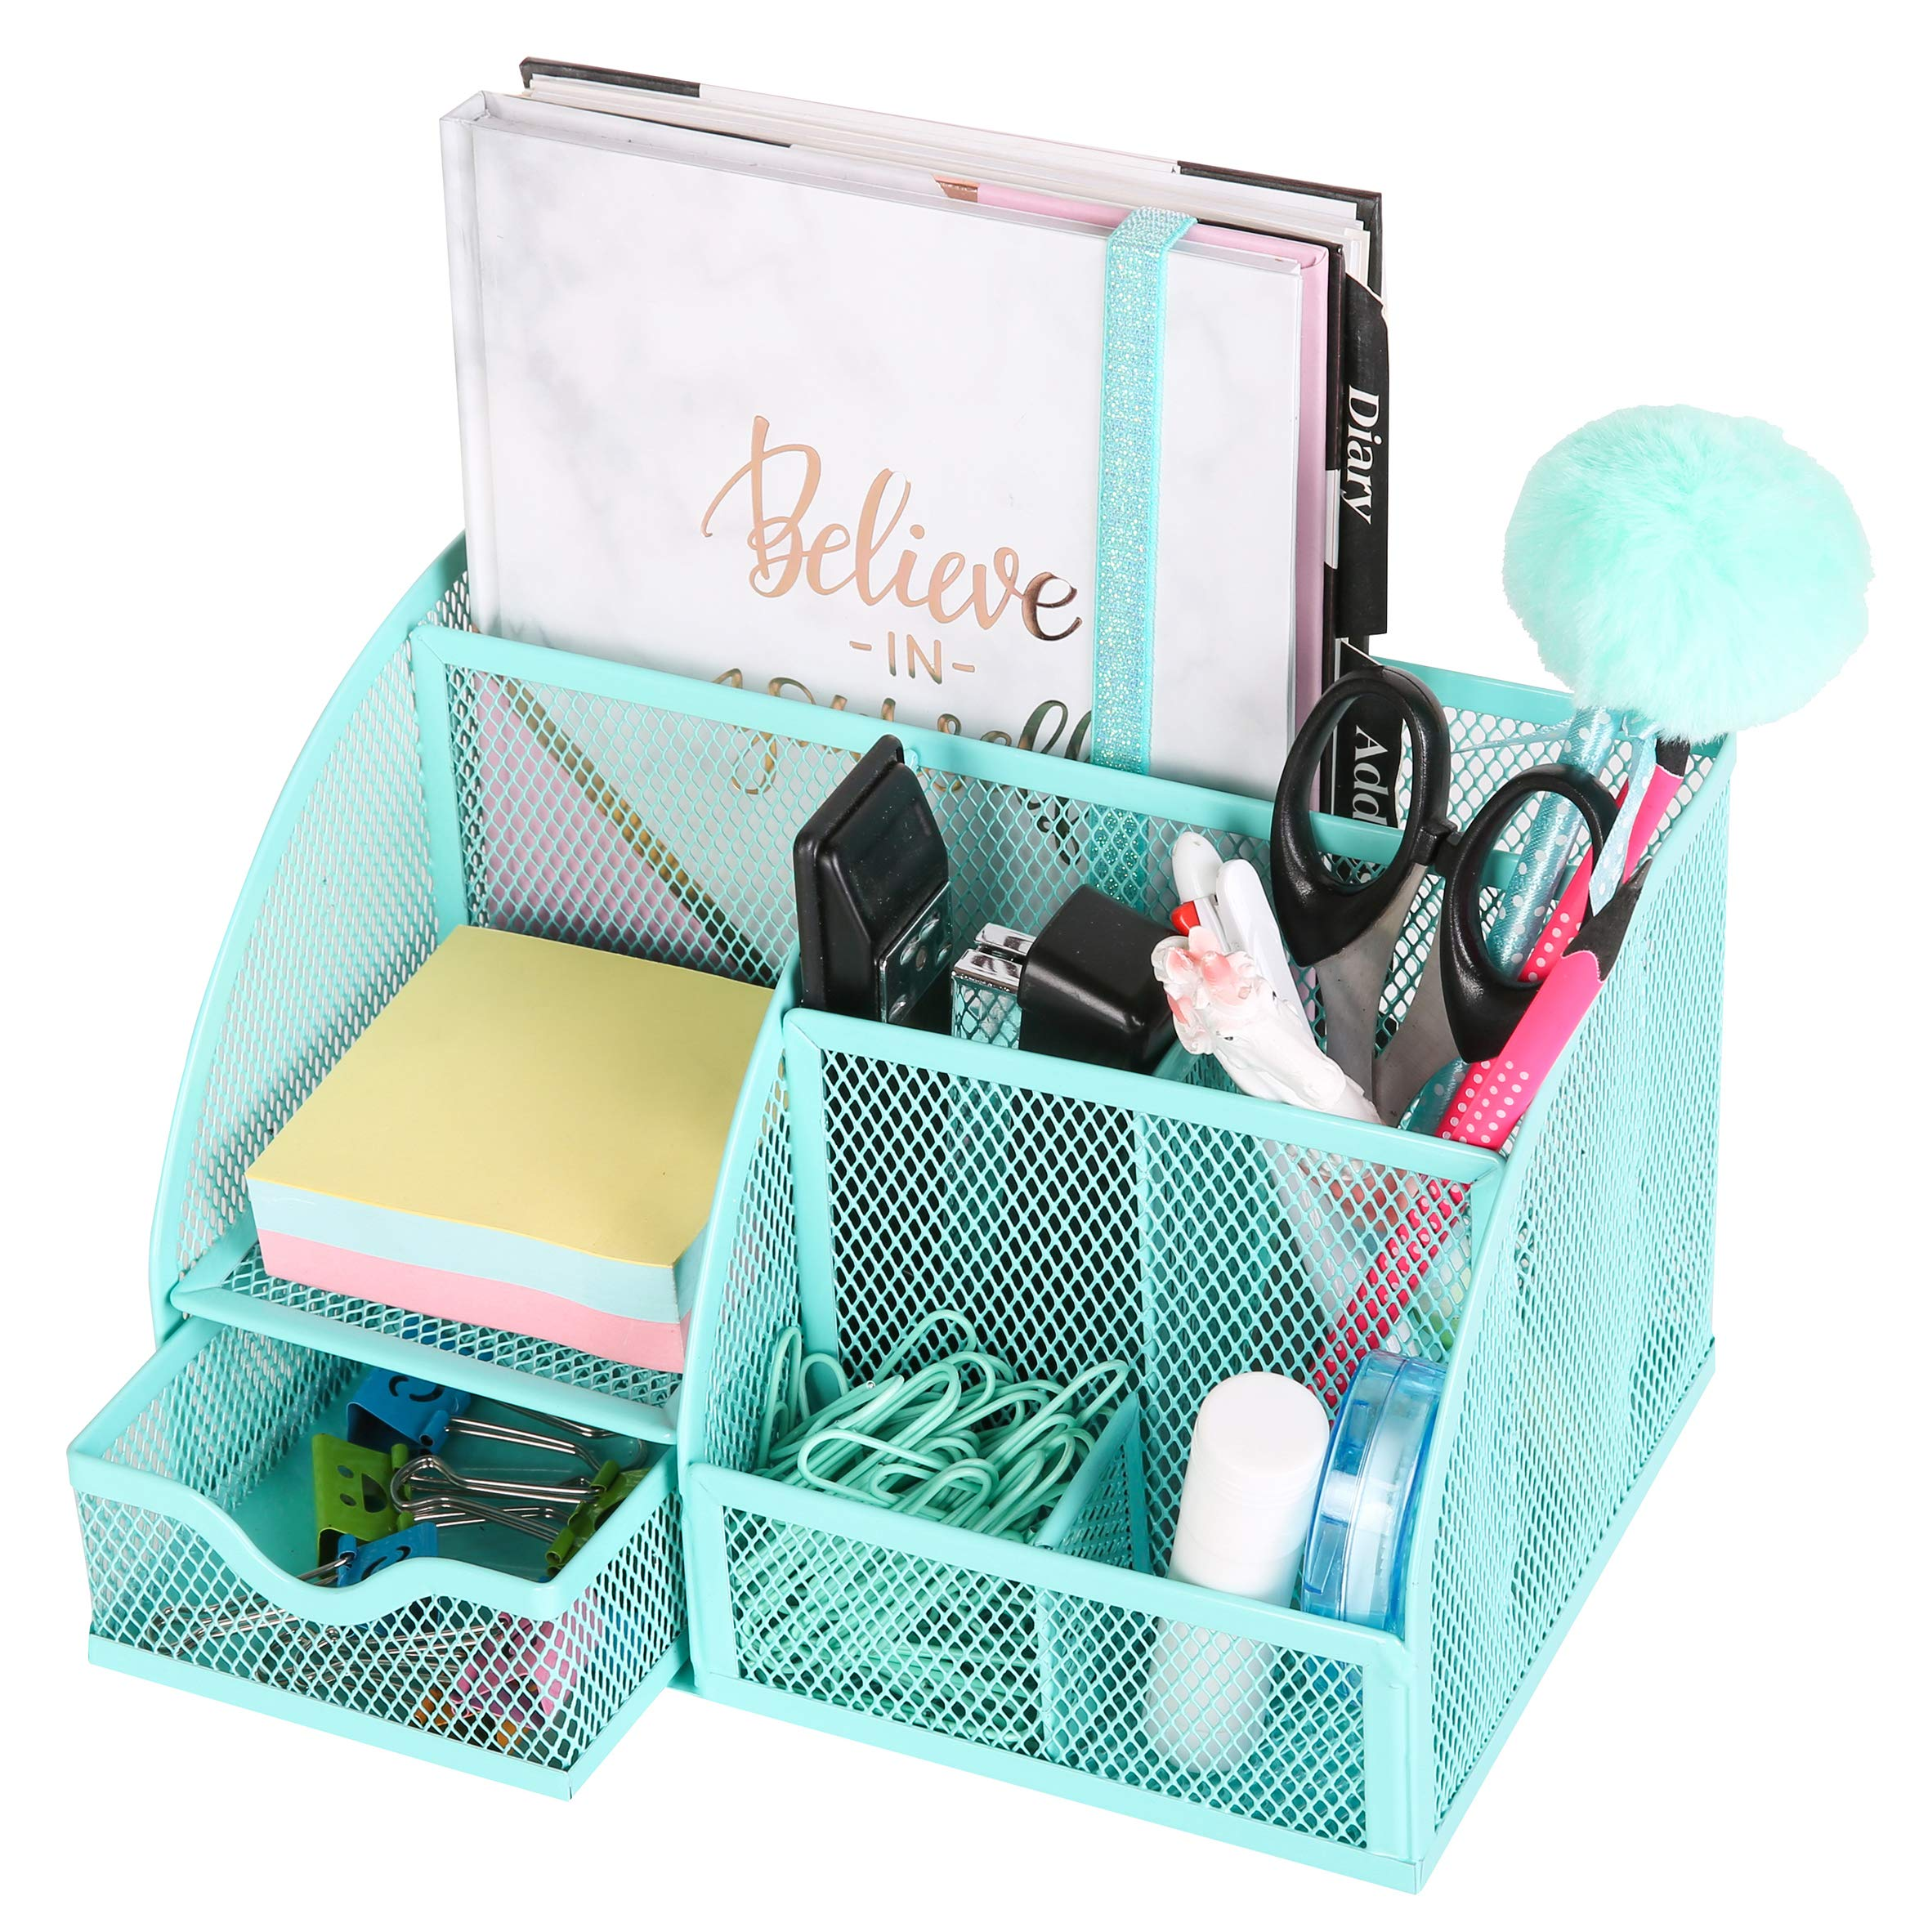 Exerz Mesh Desk Organizer Office with 6 Compartments + Drawer/Desk Tidy Candy/Pen Holder/Multifunctional Organizer EX348 Turquoise by Exerz